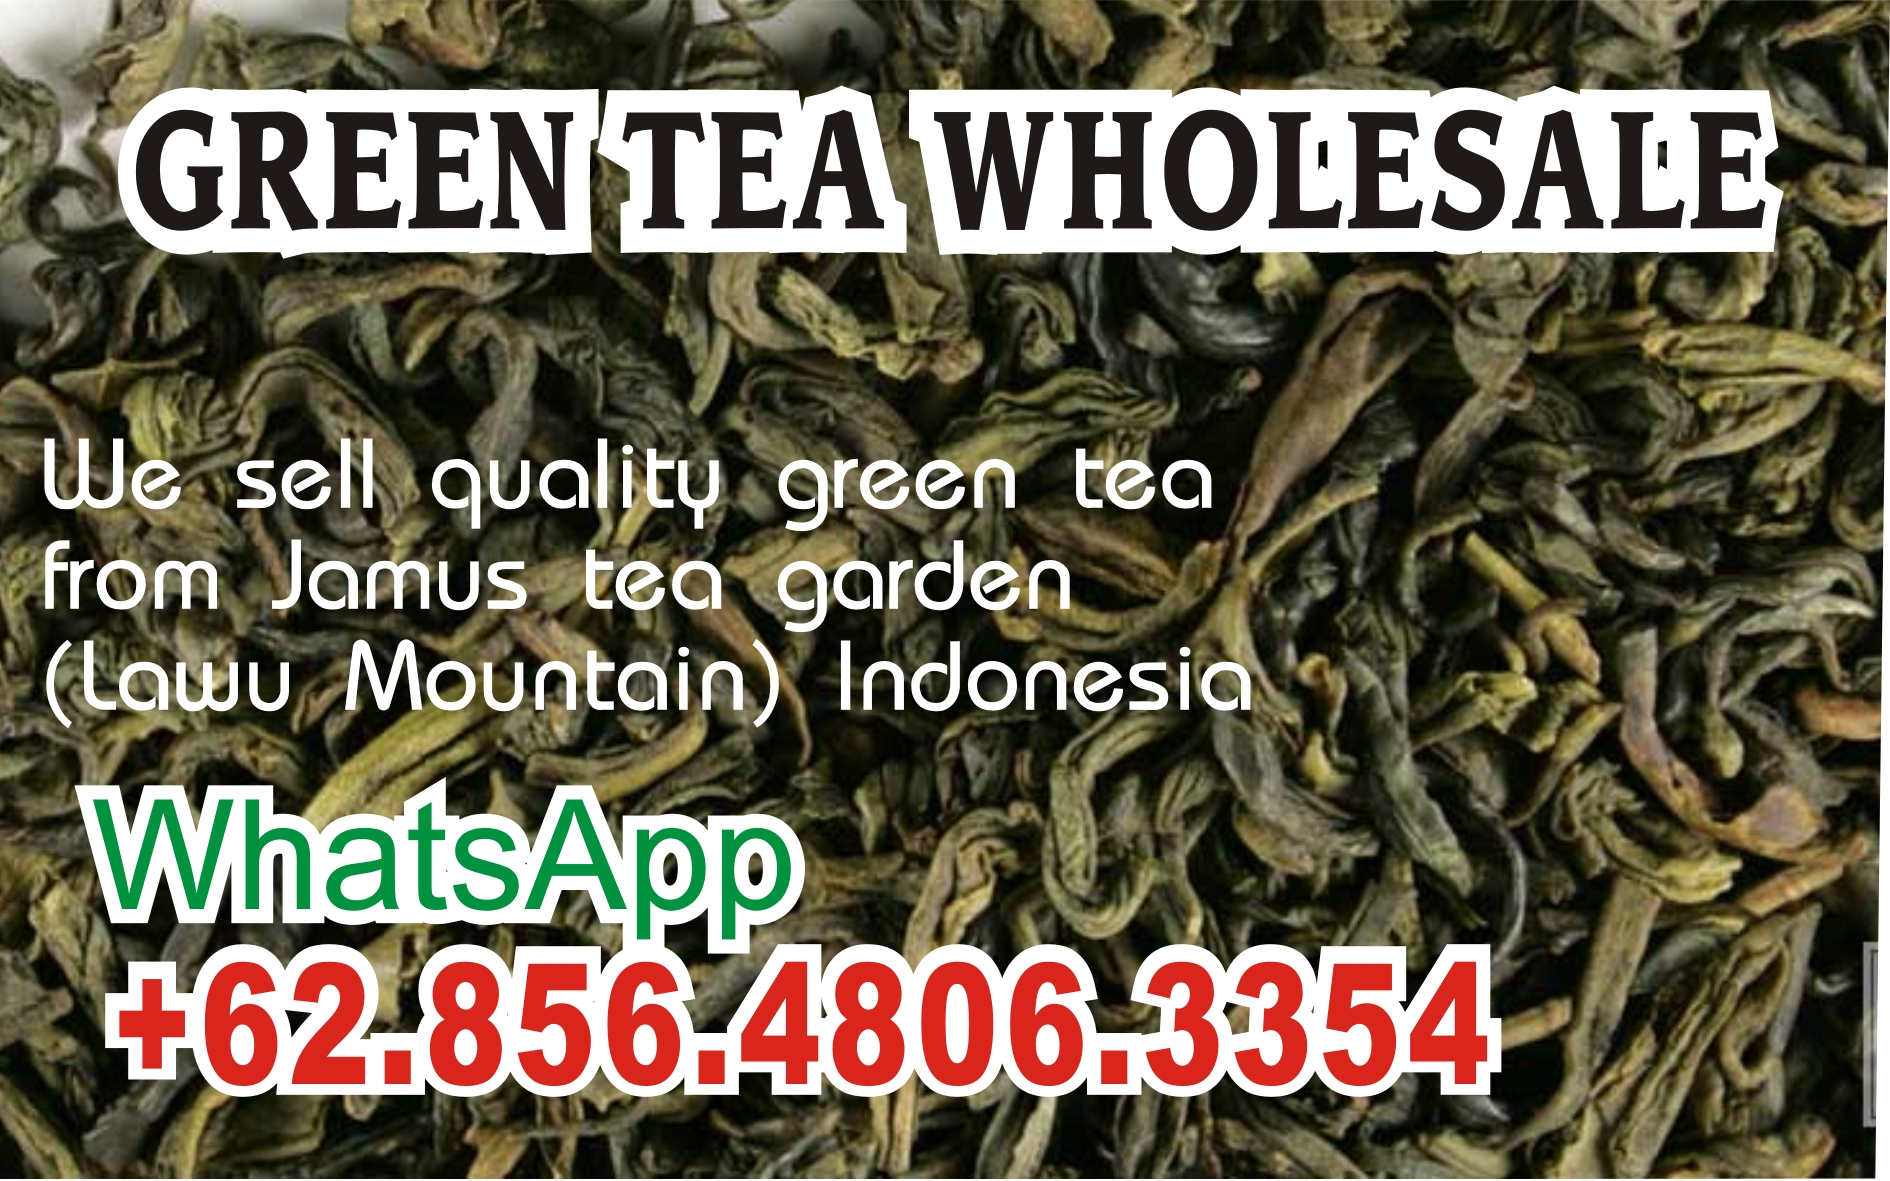 Wholesale Suppliers Indonesia 6285 64806 3354 Wa Green Tea Extract Wholesale Wholesale